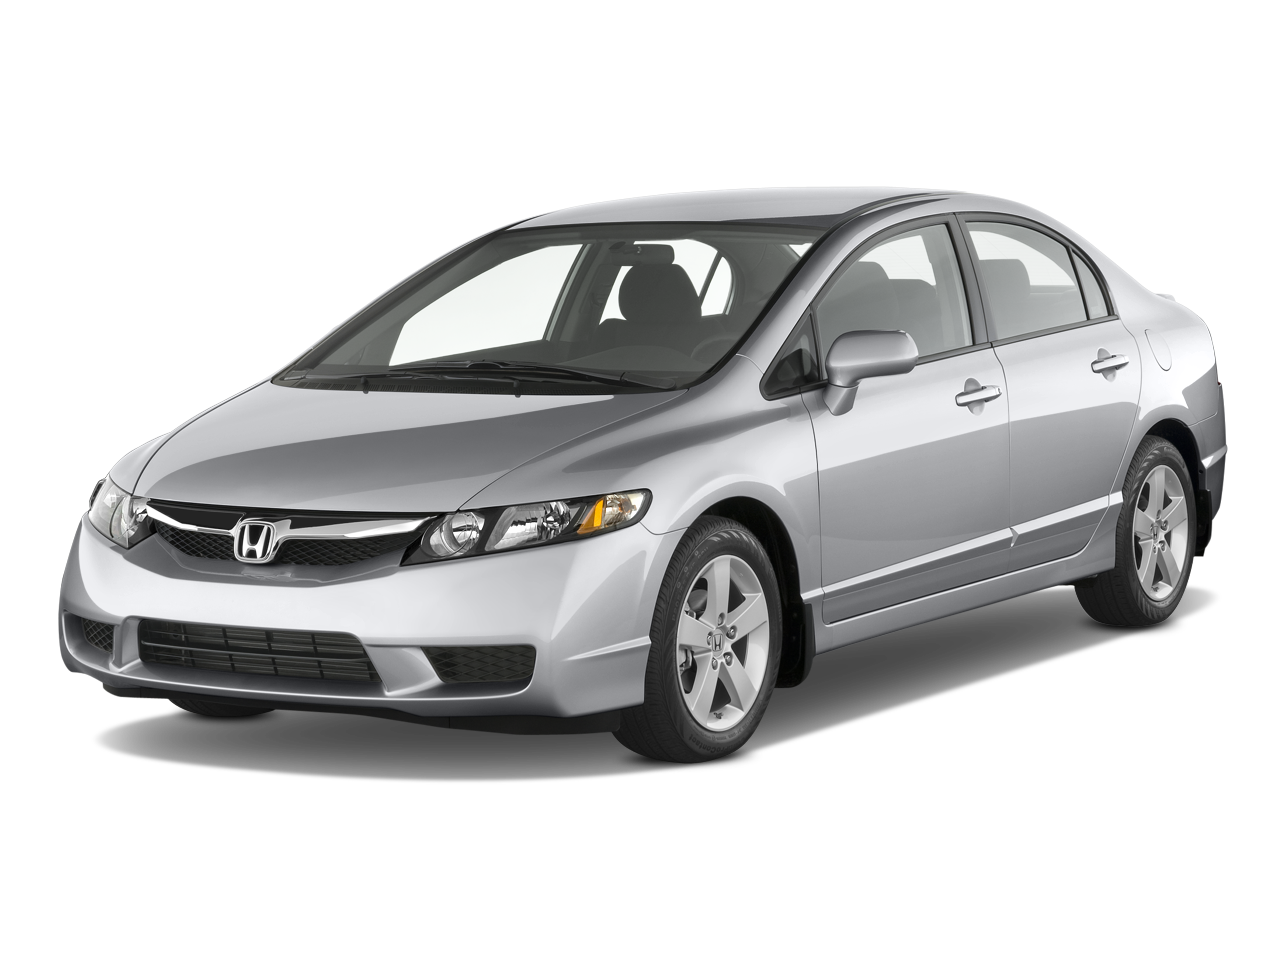 2009 honda civic si coupe honda sport coupe review. Black Bedroom Furniture Sets. Home Design Ideas